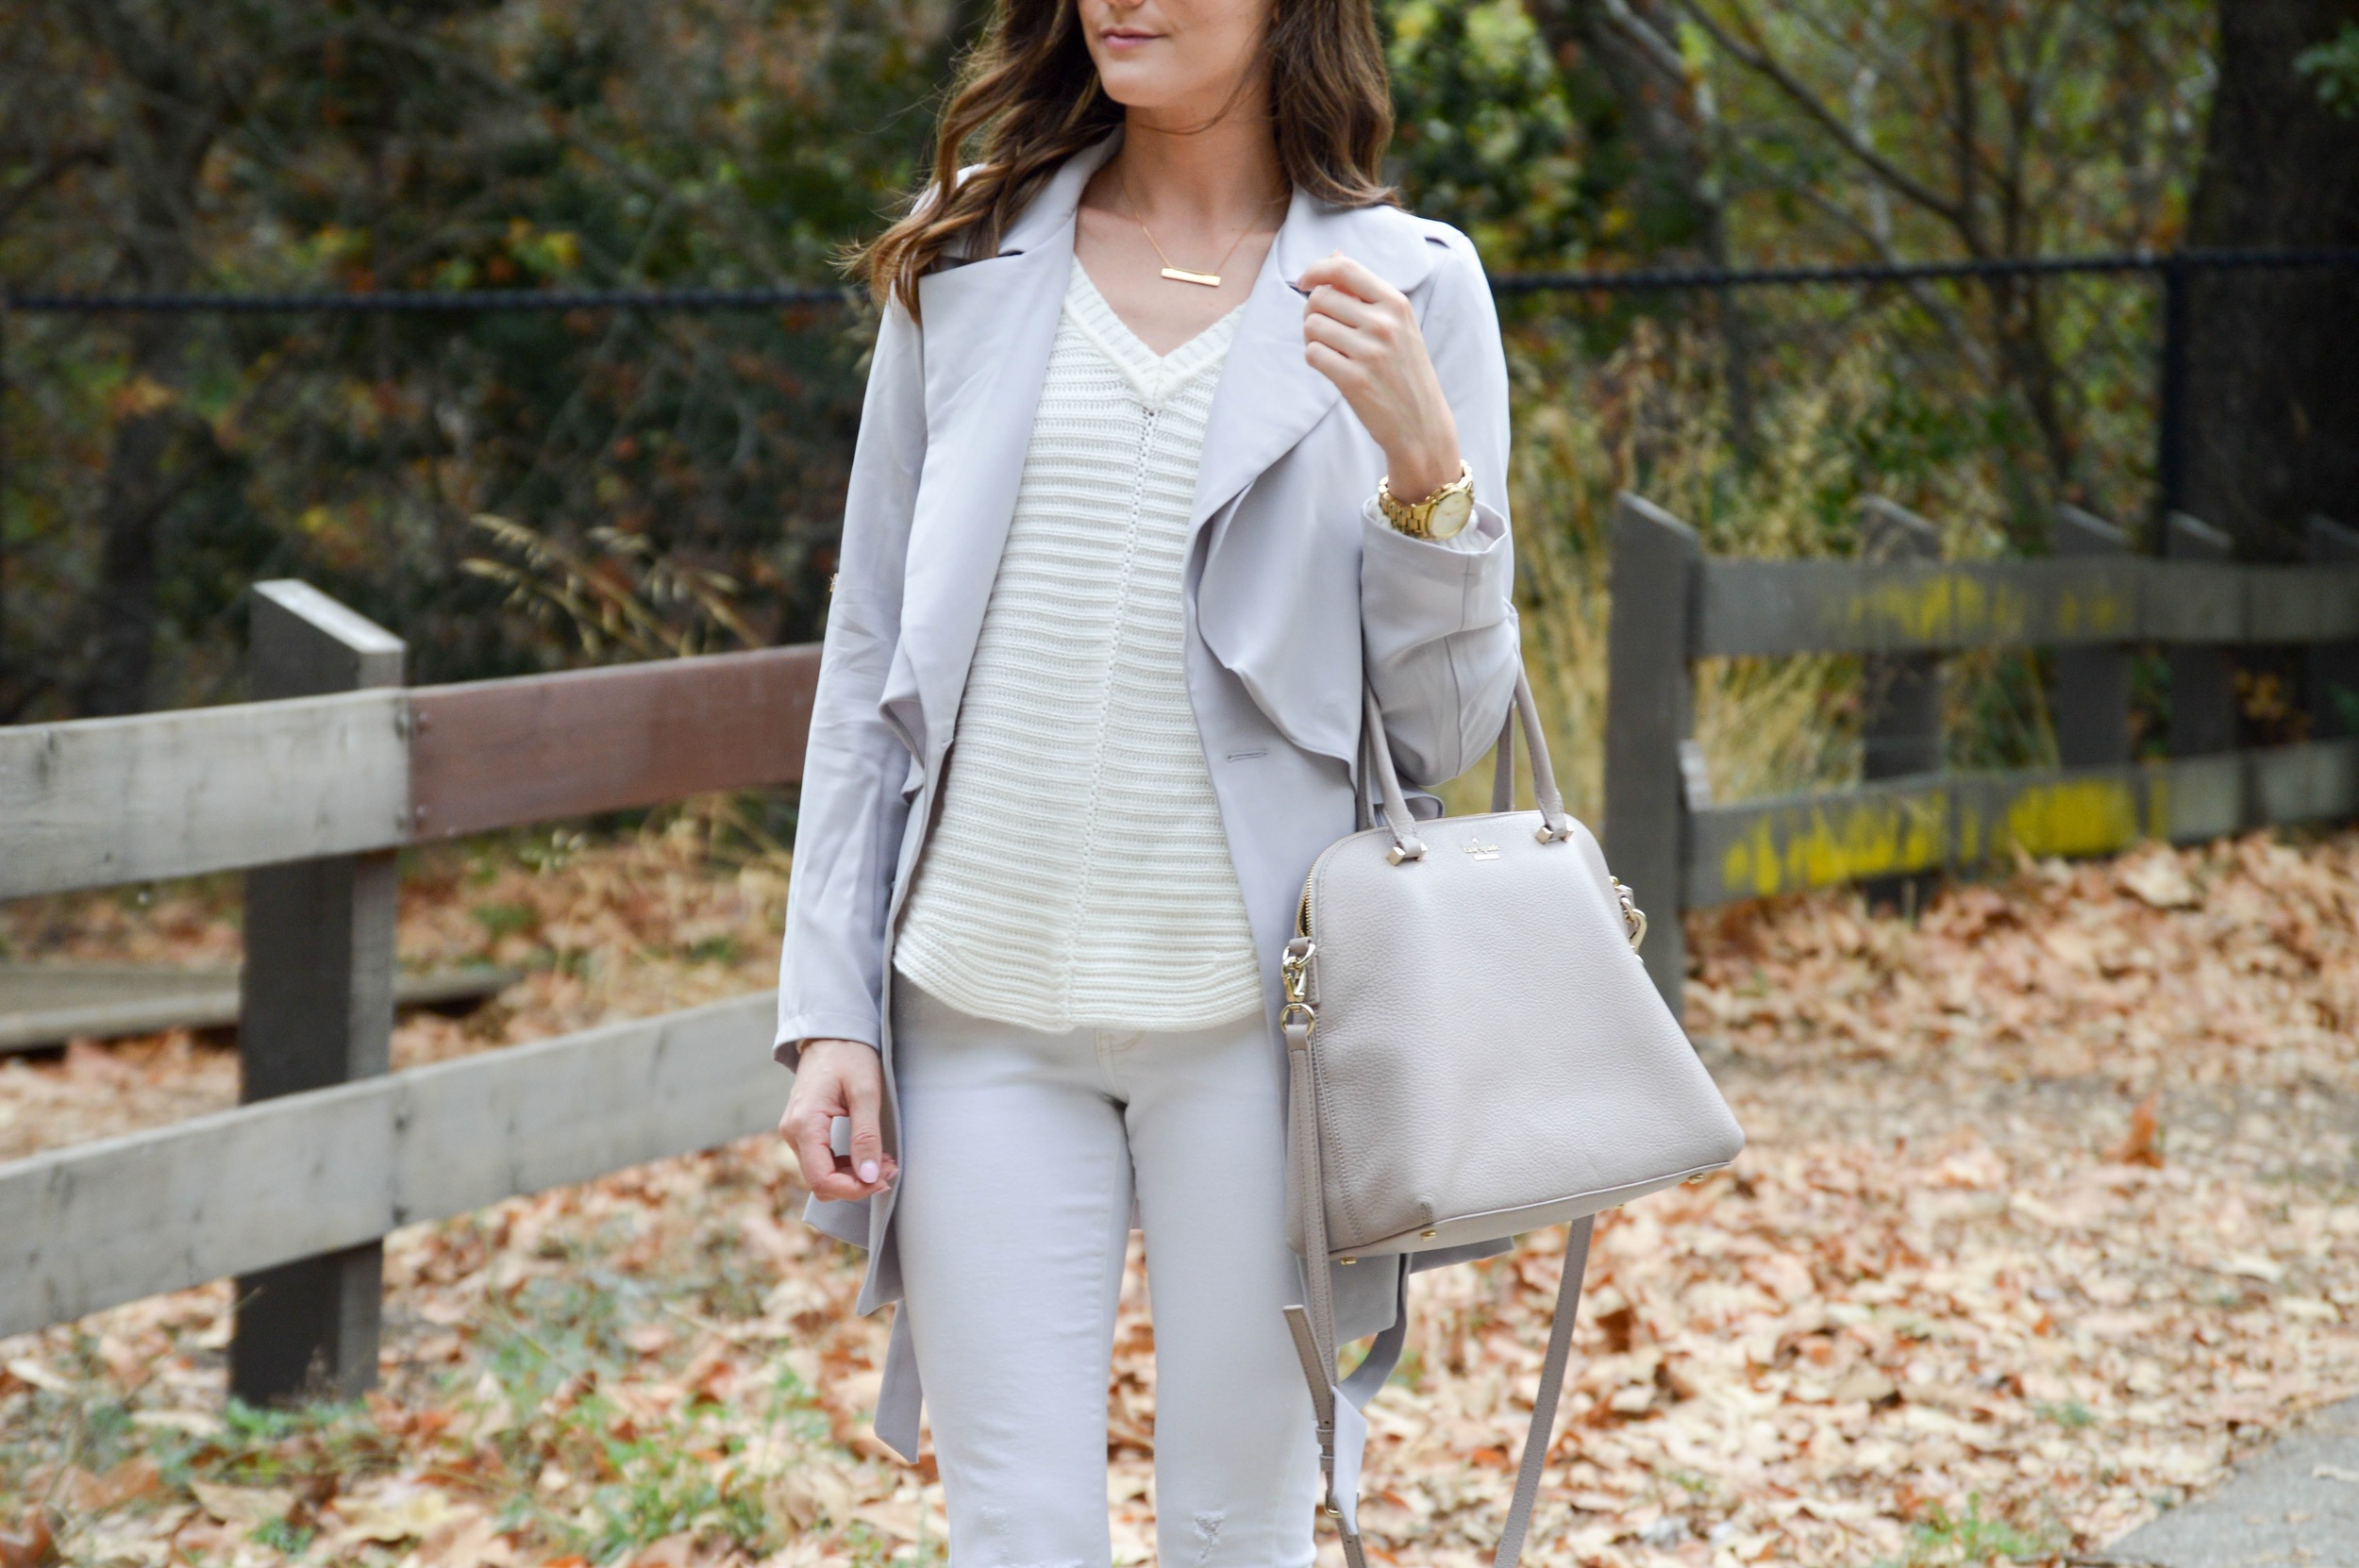 Shop the Look Below. Sweater: Sam Edelman for only $35!Trench: c/o  Chic Wish . Jeans: Old. See similar here for only $58!Shoes: Vince . Bag: Kate Spade . Necklace: BaubleBar (on waitlist, but similar  here .) Sunglasses: Similar  here and  here .